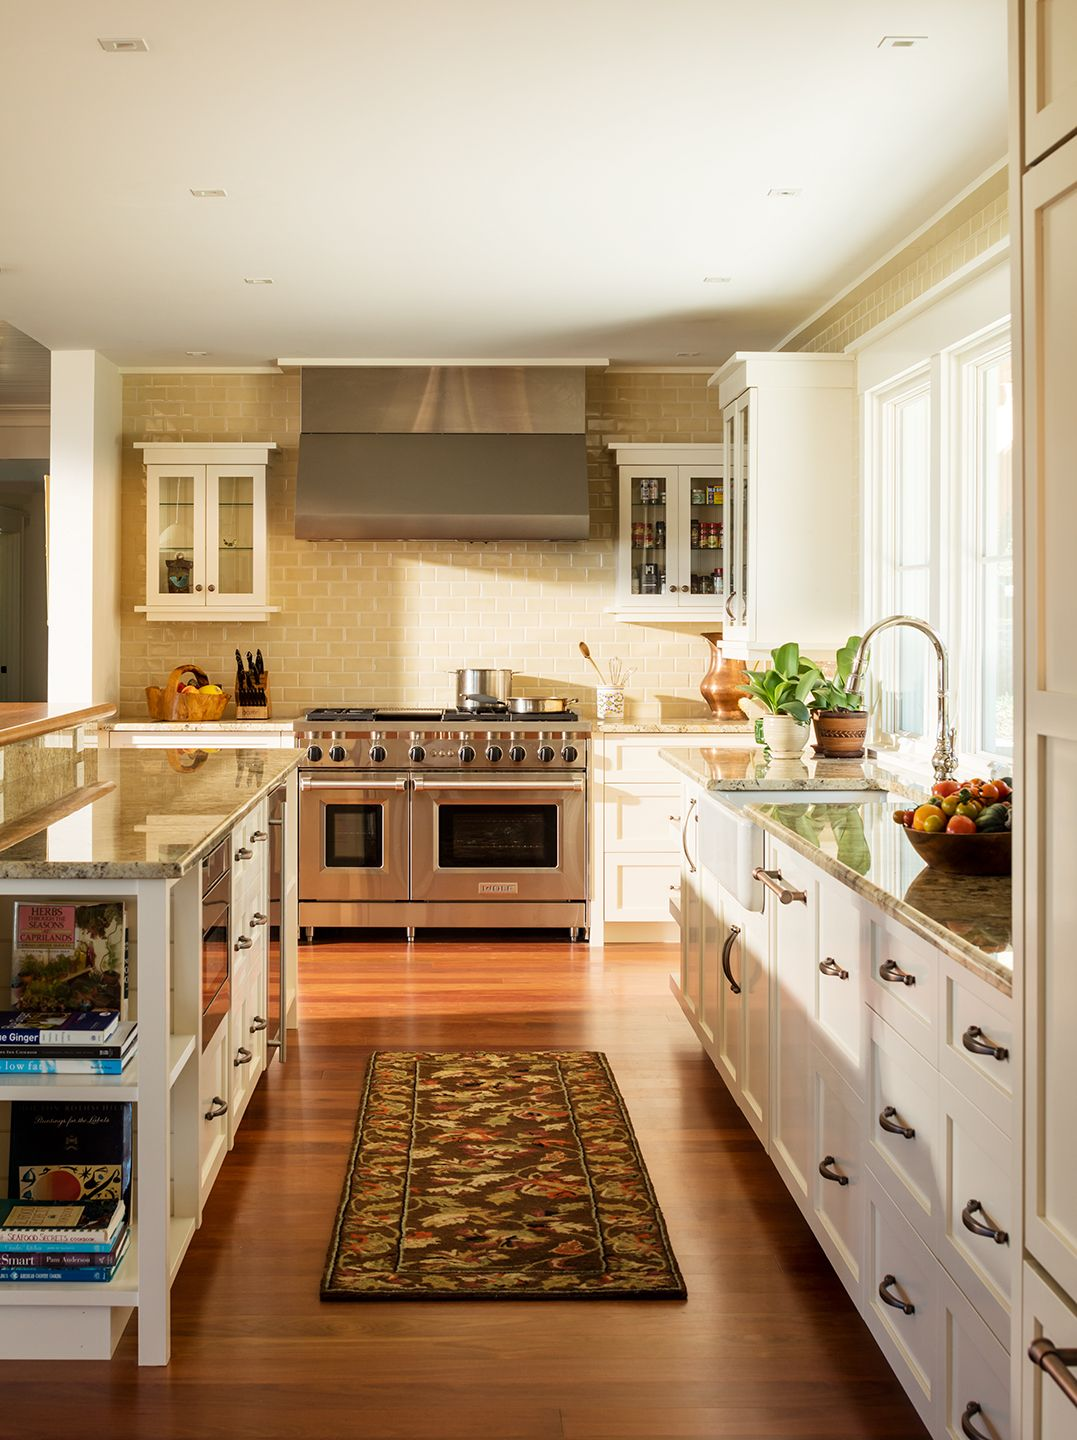 Galley Style White Kitchen With Mahogany Floors With Images Coastal Kitchen Architect House Kitchen Styling